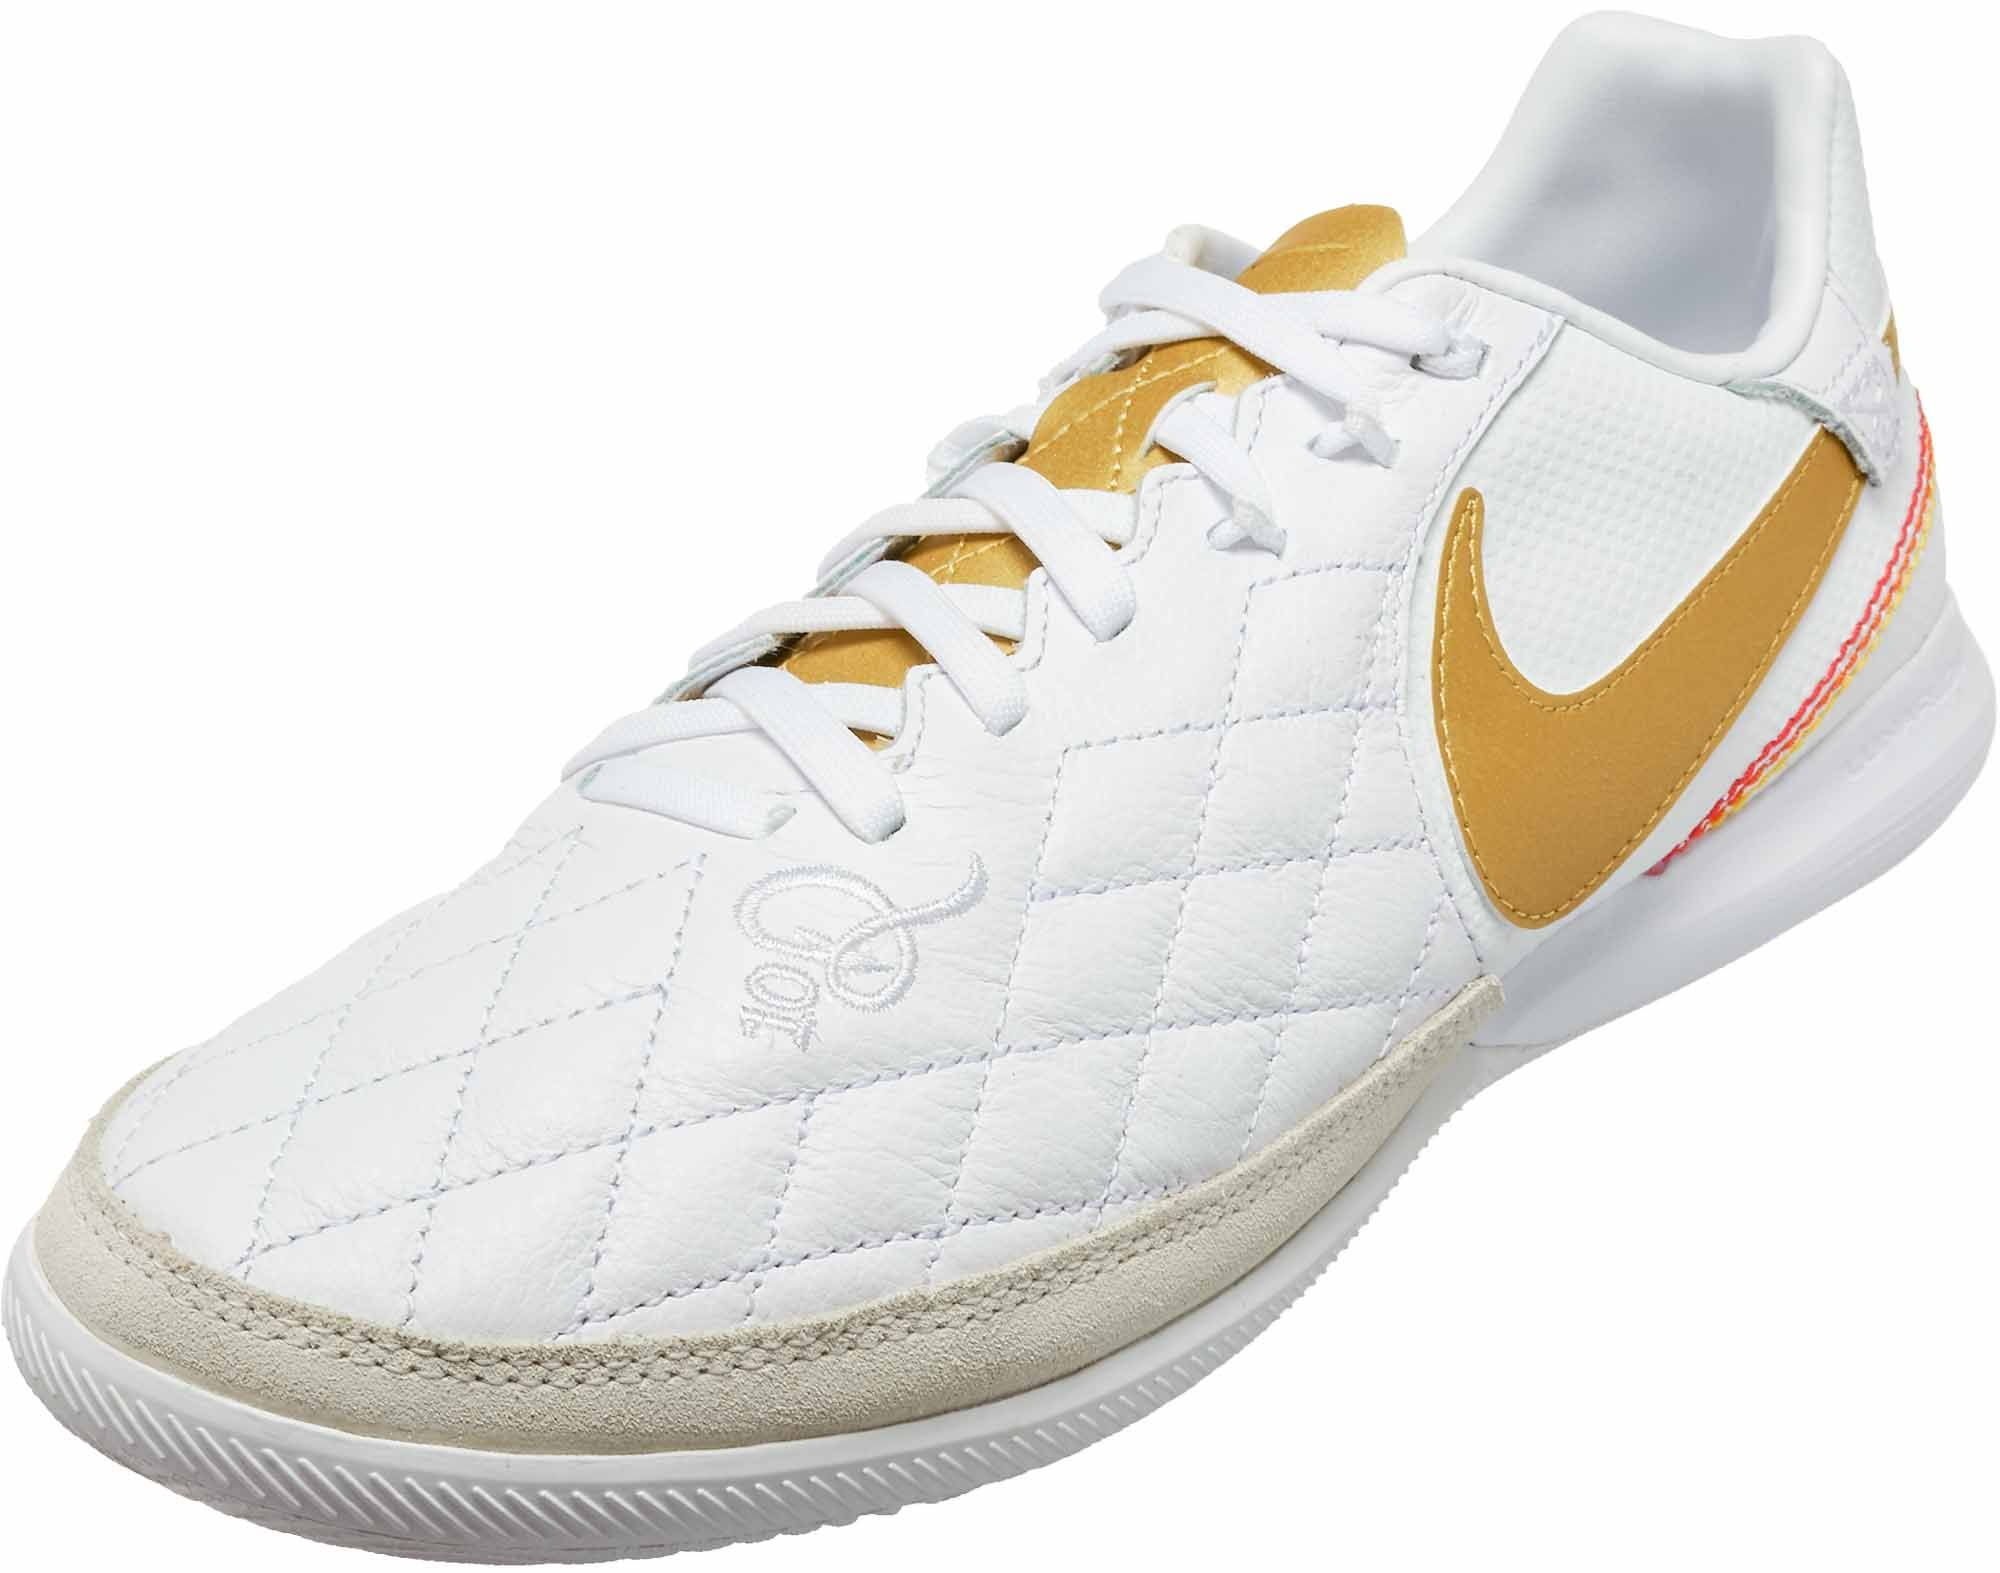 58dc252e0 Nike Lunar LegendX 7 Pro indoor shoe. Celebrate Ronaldinho! Buy these shoes  from www.soccerpro.com